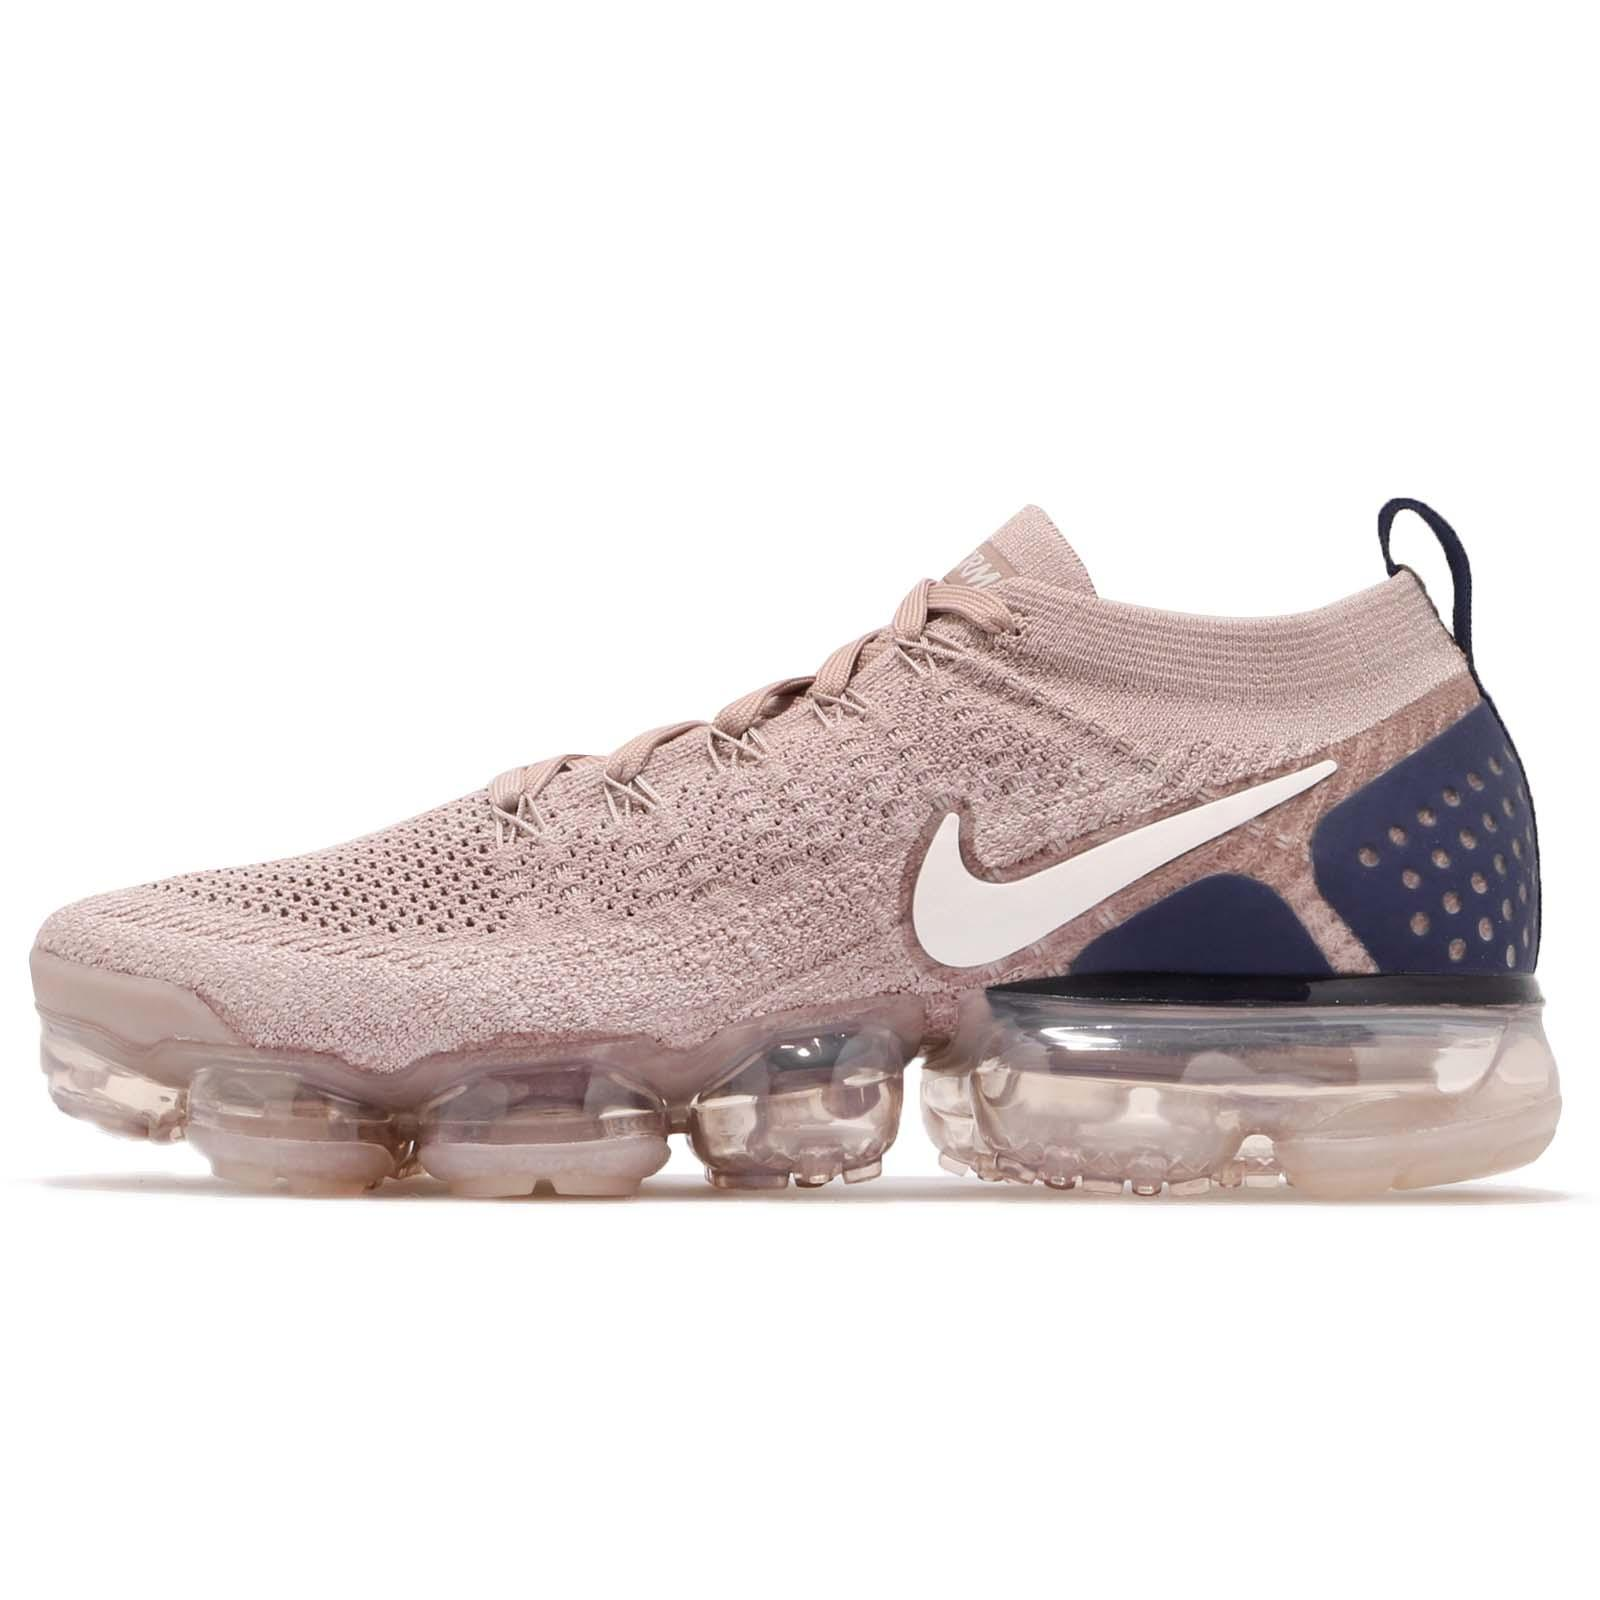 best service 6bb30 32060 Nike Air Vapormax Flyknit 2 2.0 Max Difused Taupe Mens Running Shoes 942842 -201